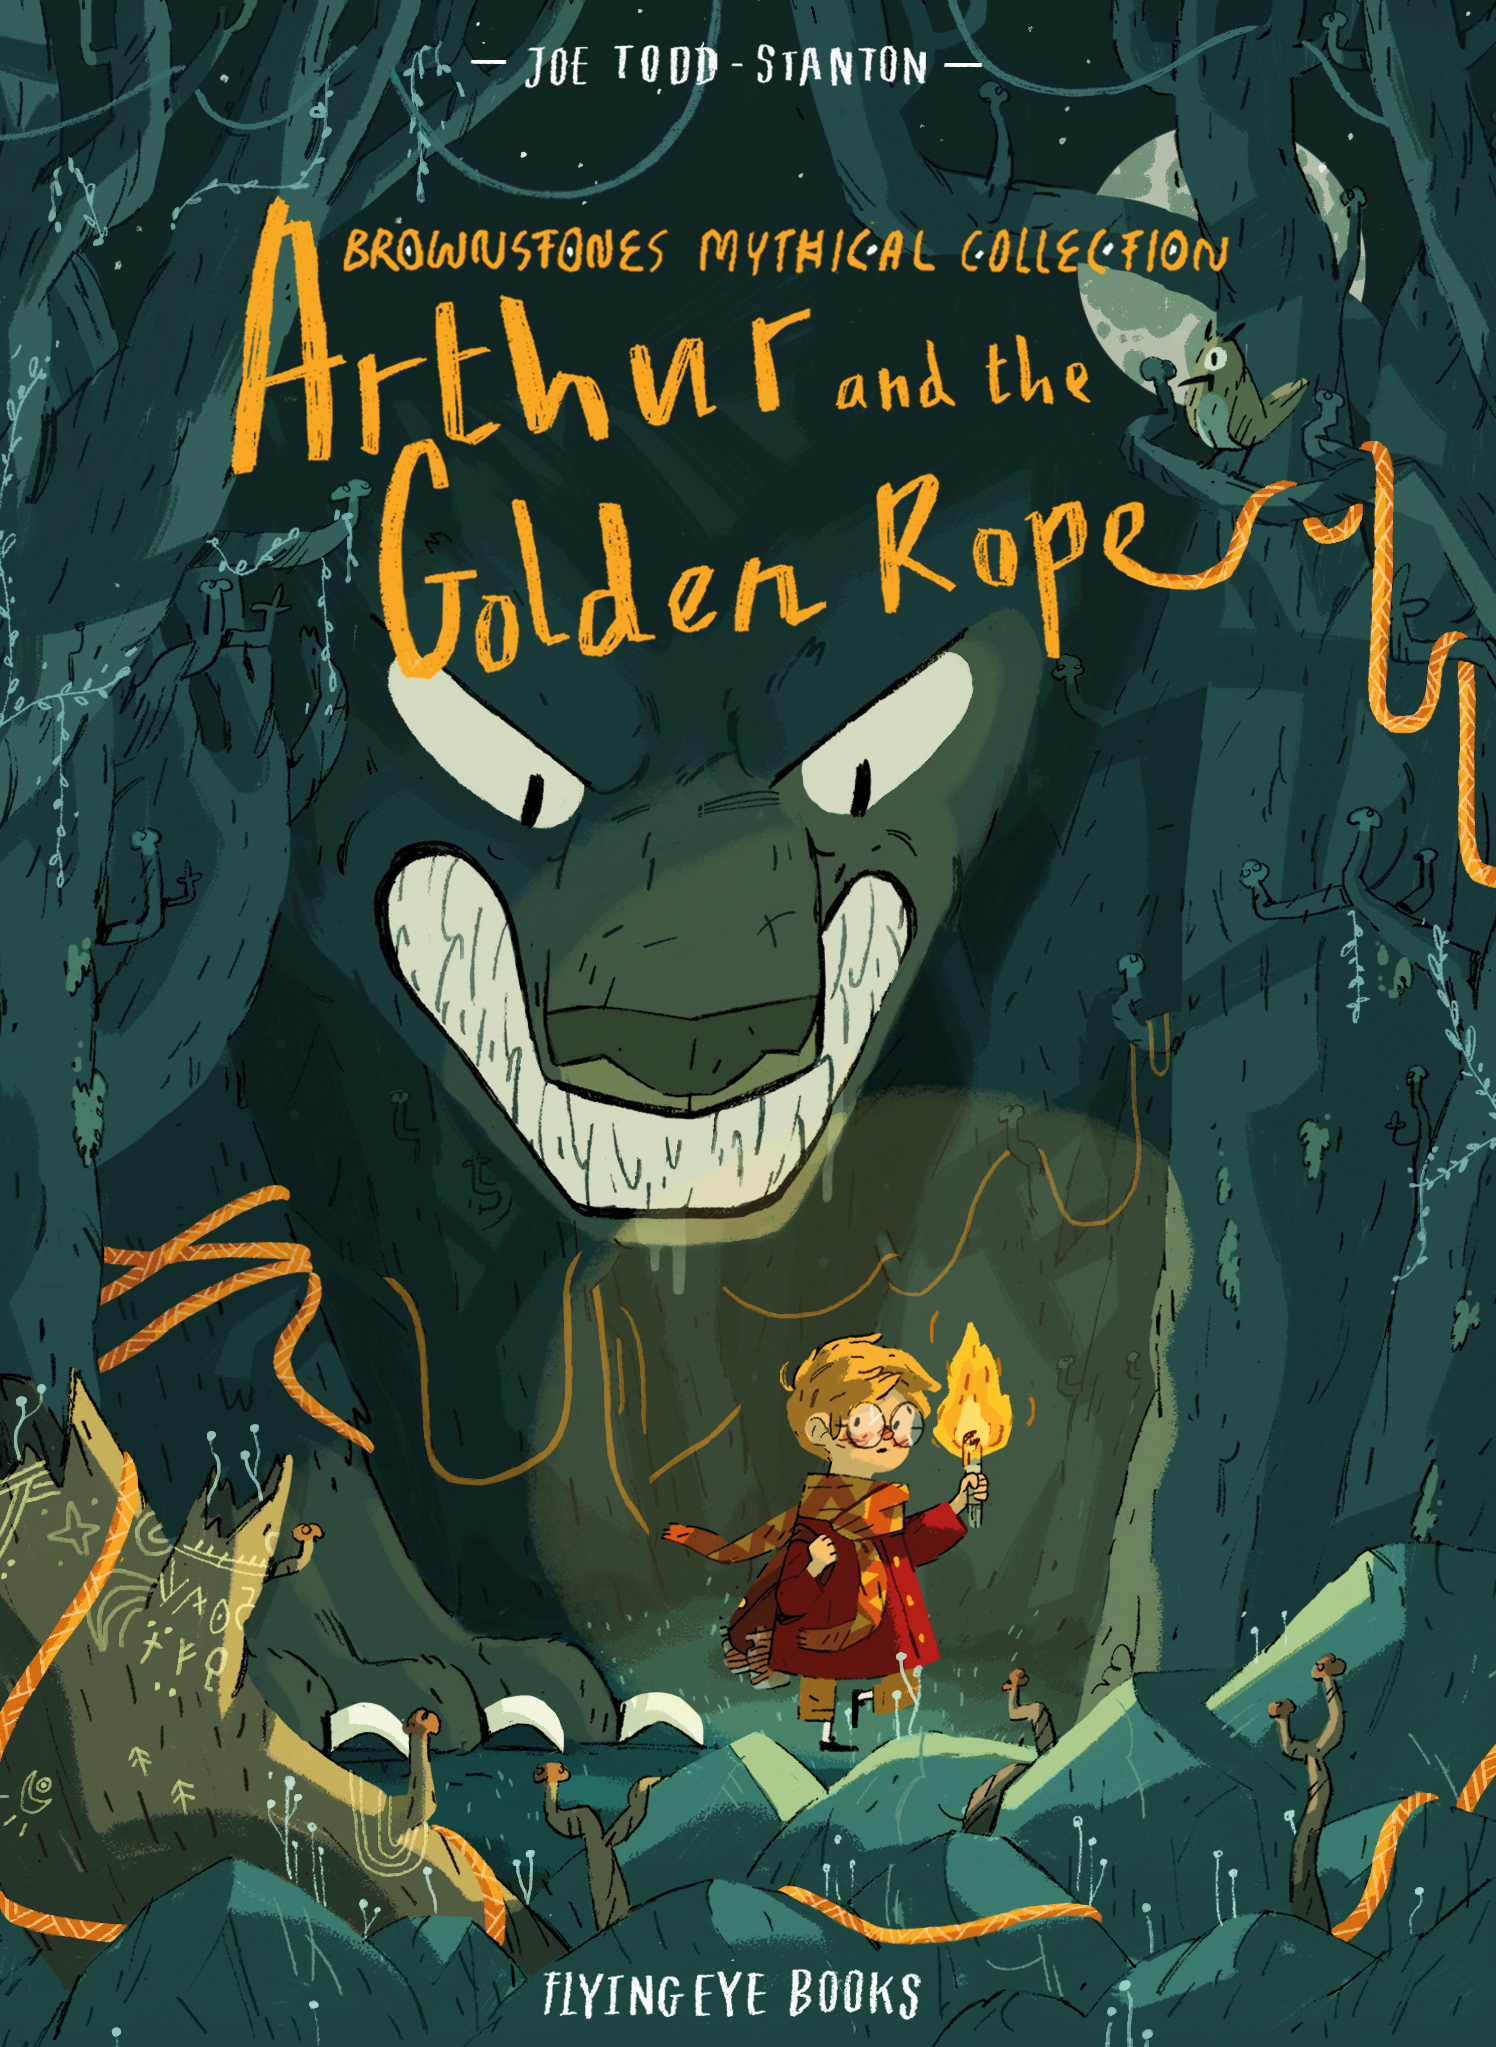 BROWNSTONE'S MYTHICAL COLLECTION: ARTHUR AND THE GOLDEN ROPE